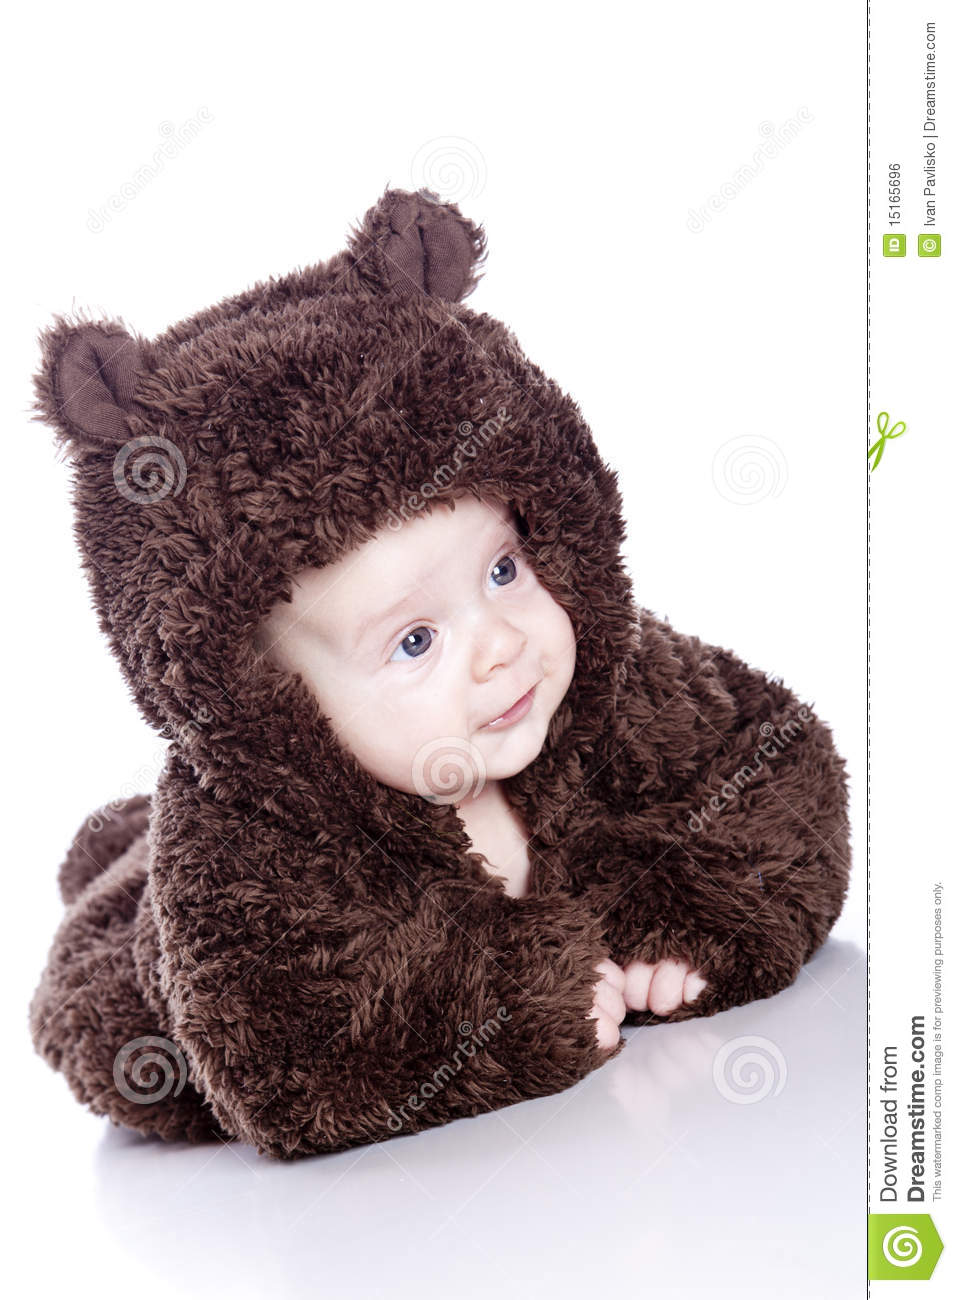 e70285aab82a Baby boy in a bear suit stock photo. Image of infant - 15165696